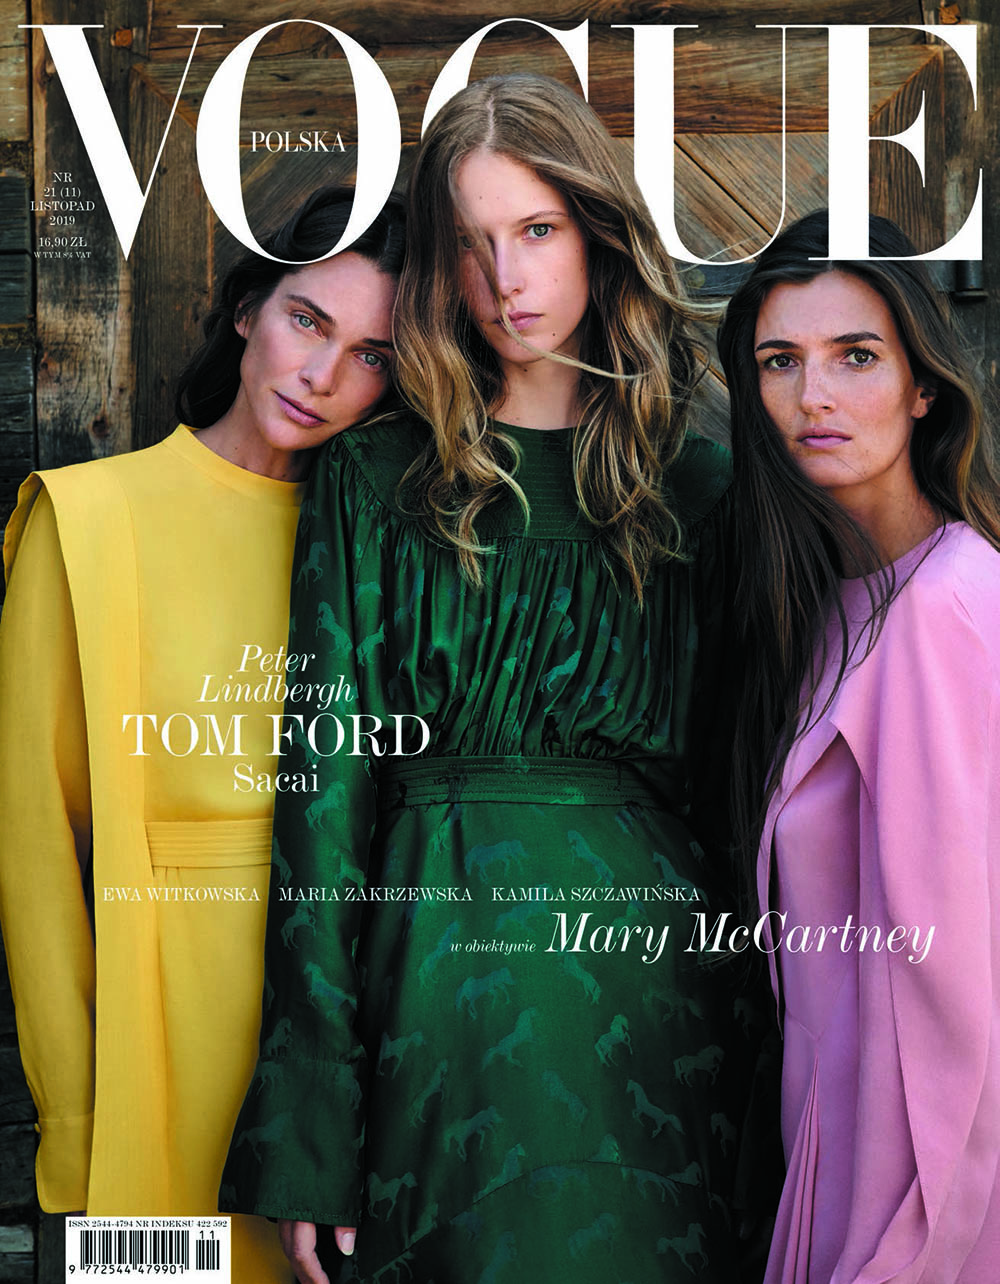 Vogue Poland November 2019 cover by Mary McCartney